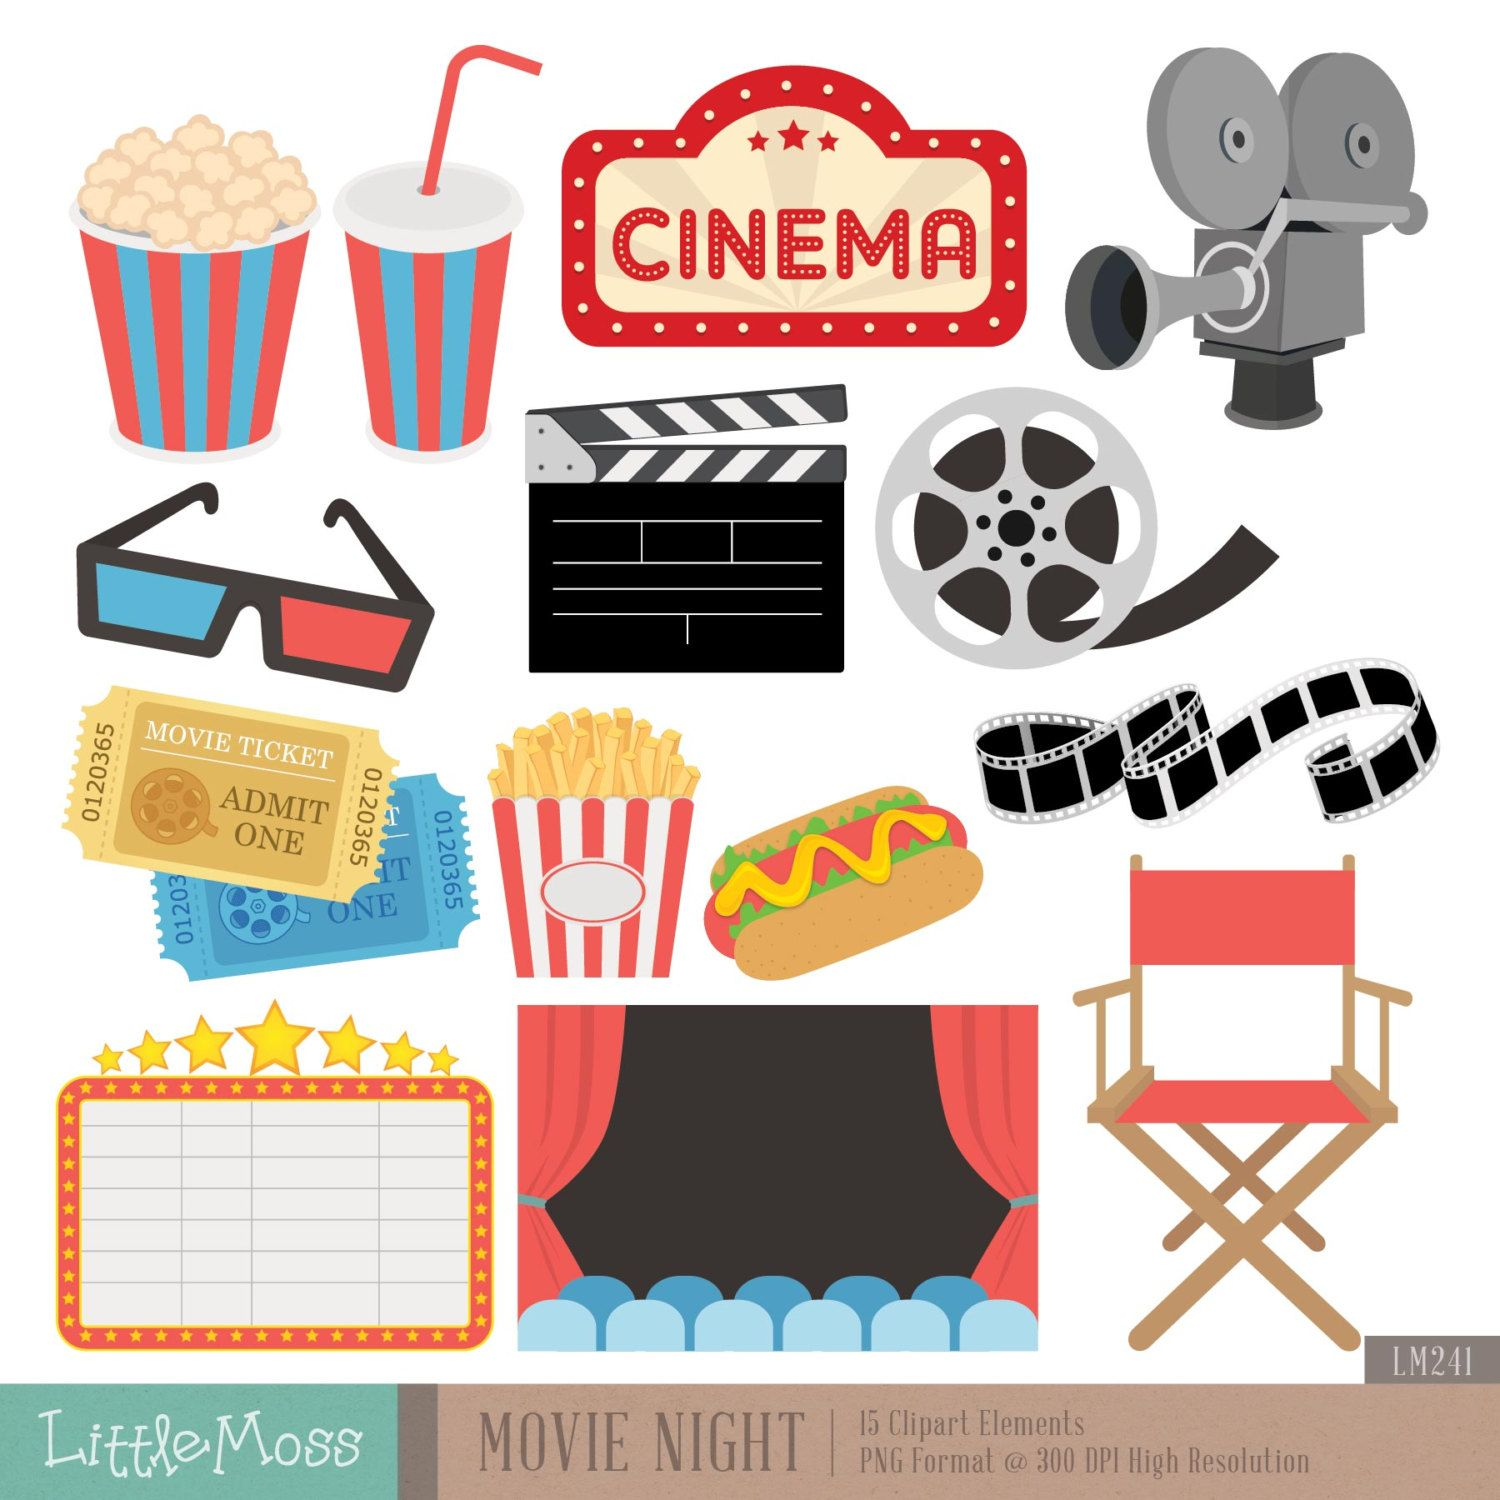 royalty free download Cinema clipart movie party. Night digital clip art.